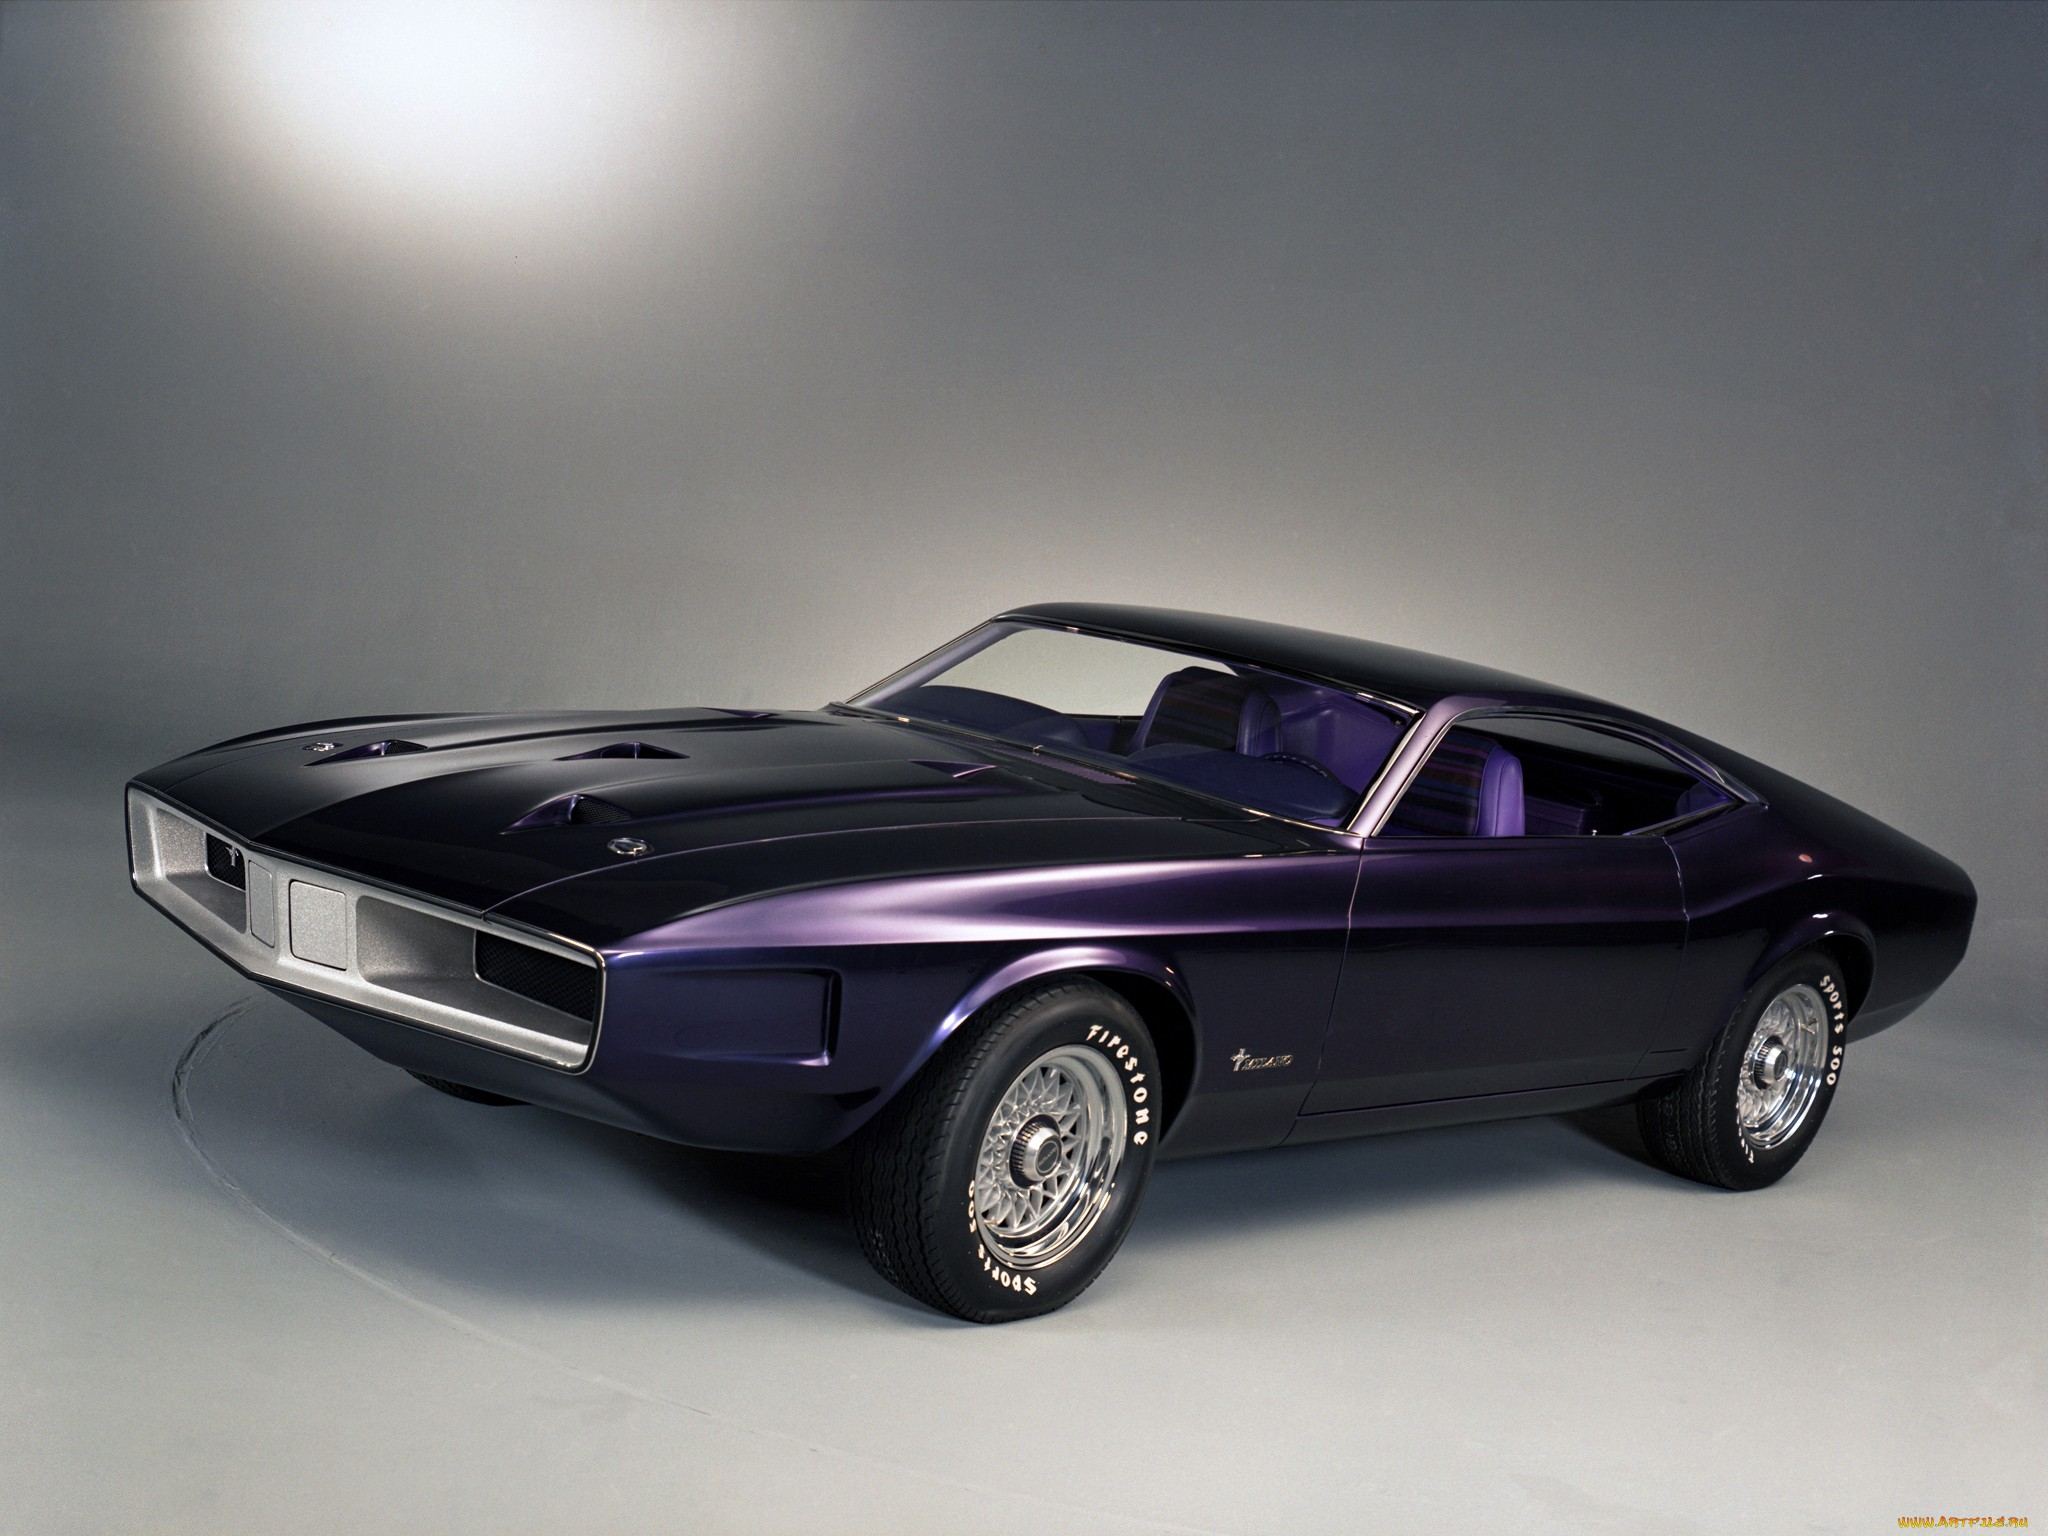 1970р. Mustang Milano Concept, фото Ford Mustang